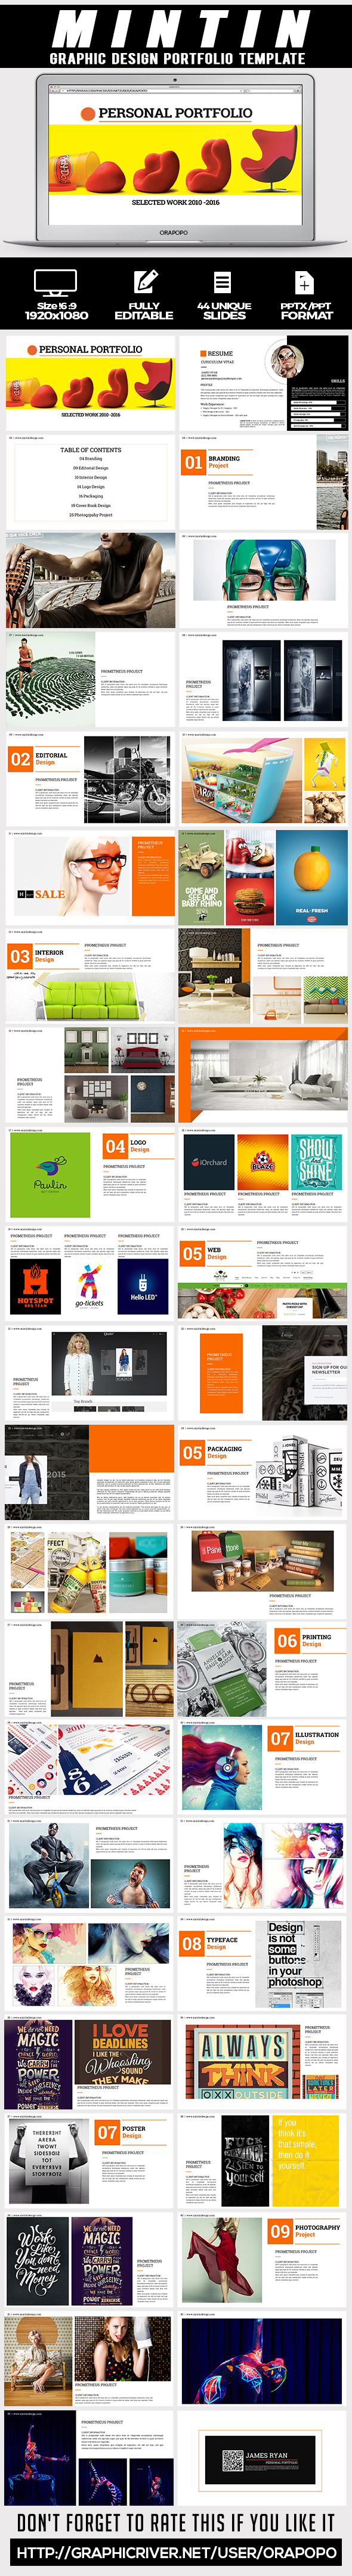 Mintin graphic design portfolio template by orapopo graphicriver mintin graphic design portfolio template creative powerpoint templates pronofoot35fo Image collections